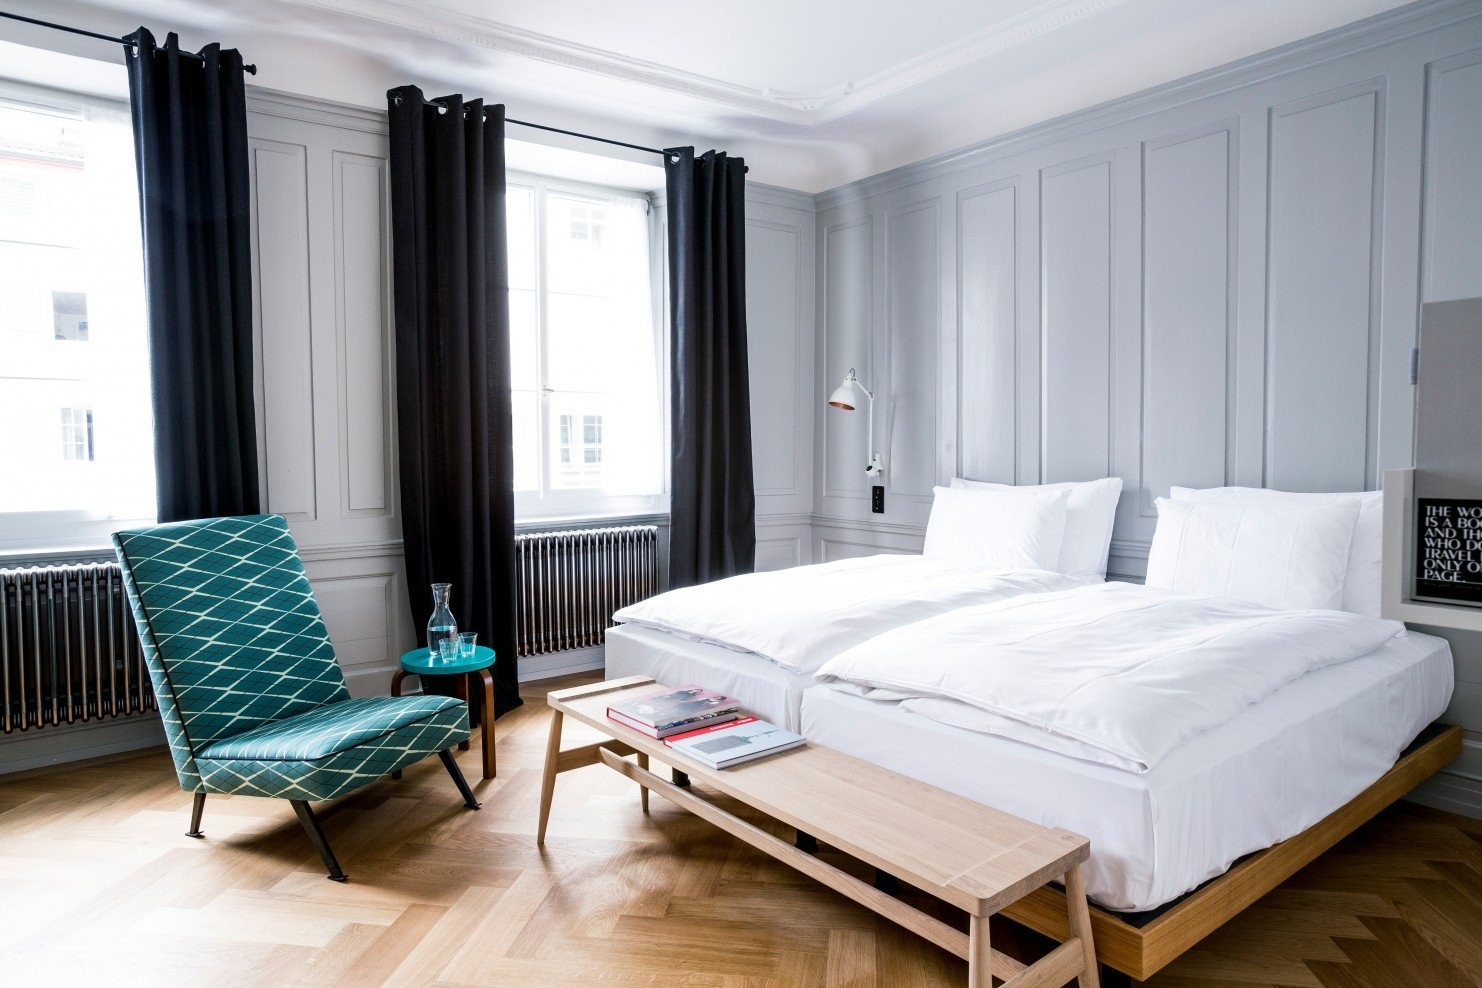 Hotels For The Spring Bank Holiday 2020 In Zurich | Smith Hotels-Zurich Bank Holidays 2020